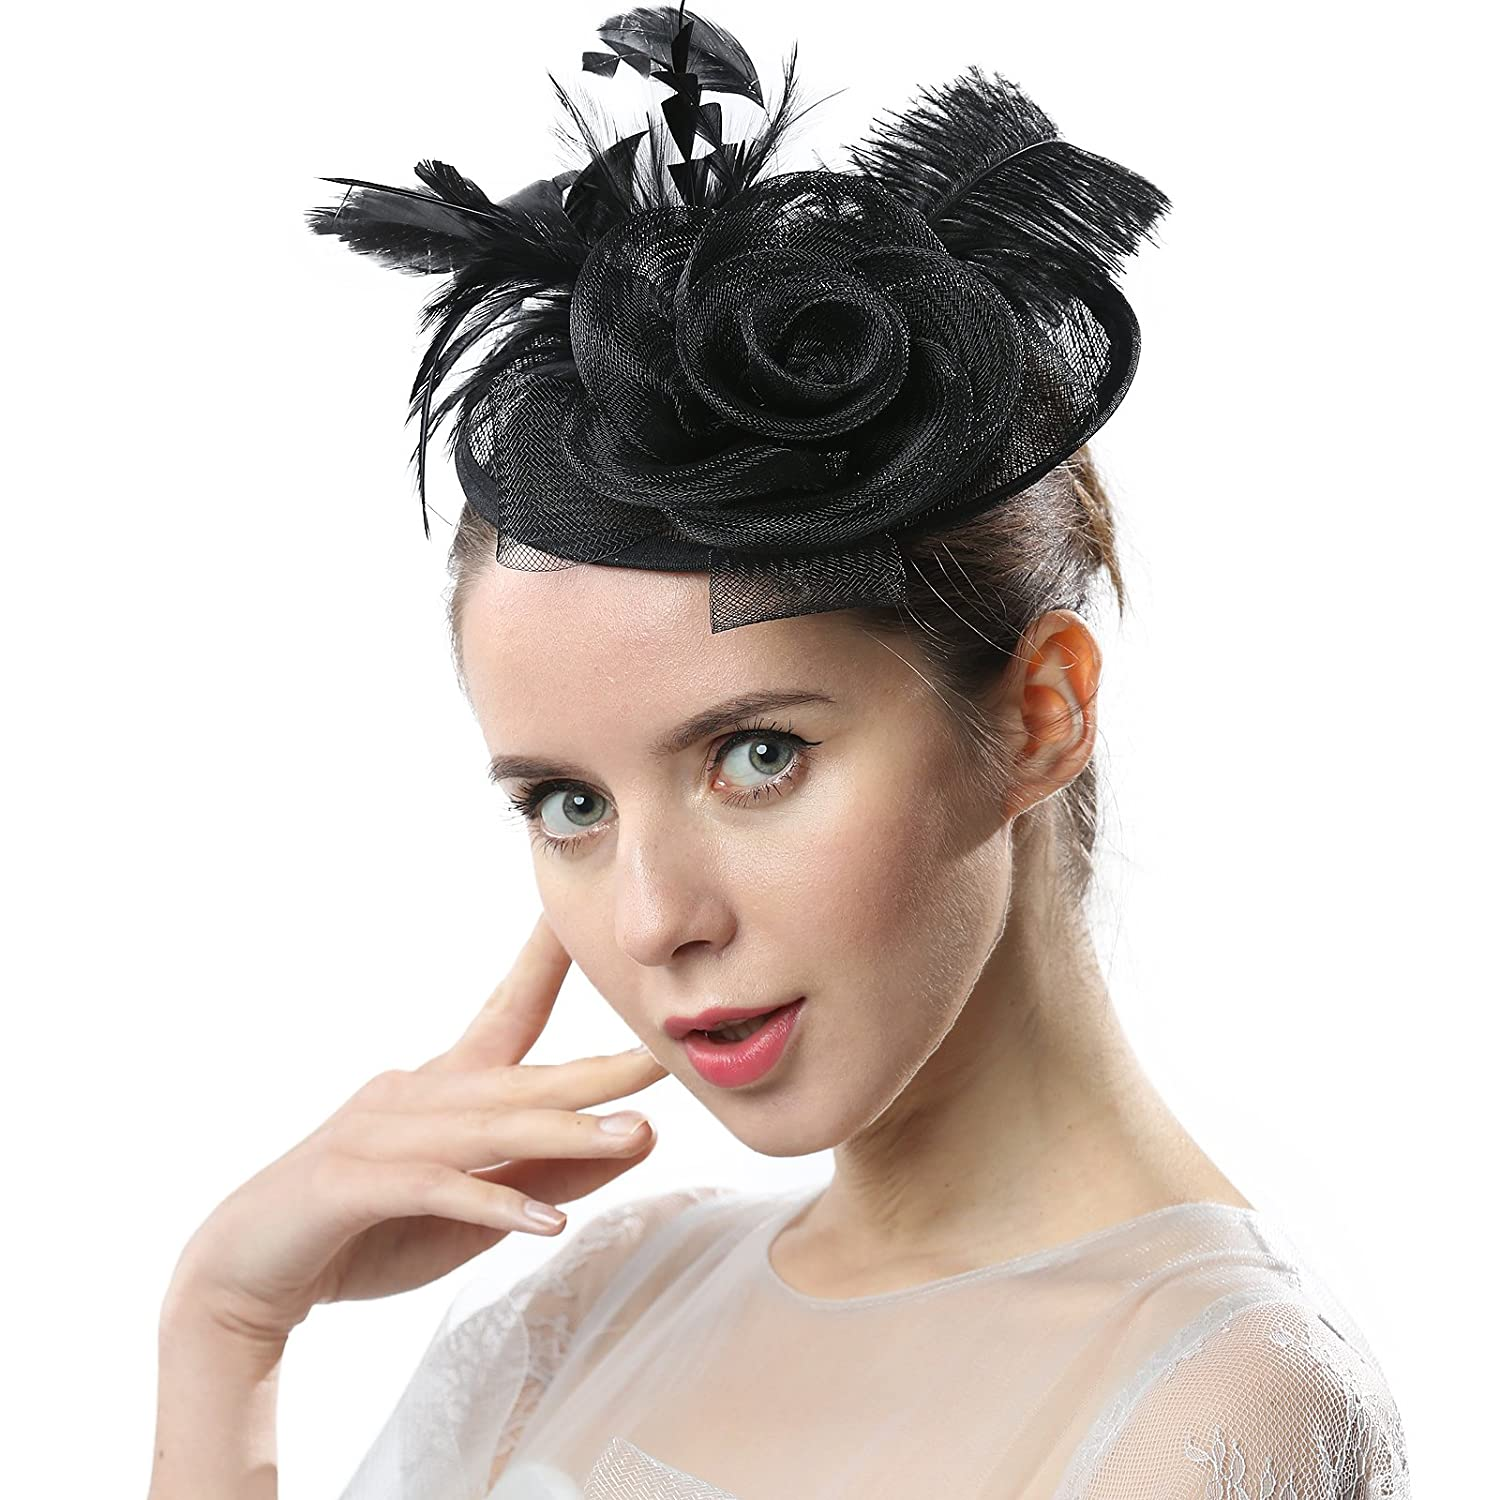 Black Janey&Rubbins Women Cocktail Sinamay Fascinators Hair Clips Derby Hats for Kentucky Derby Day, Church, Wedding, Tea Party